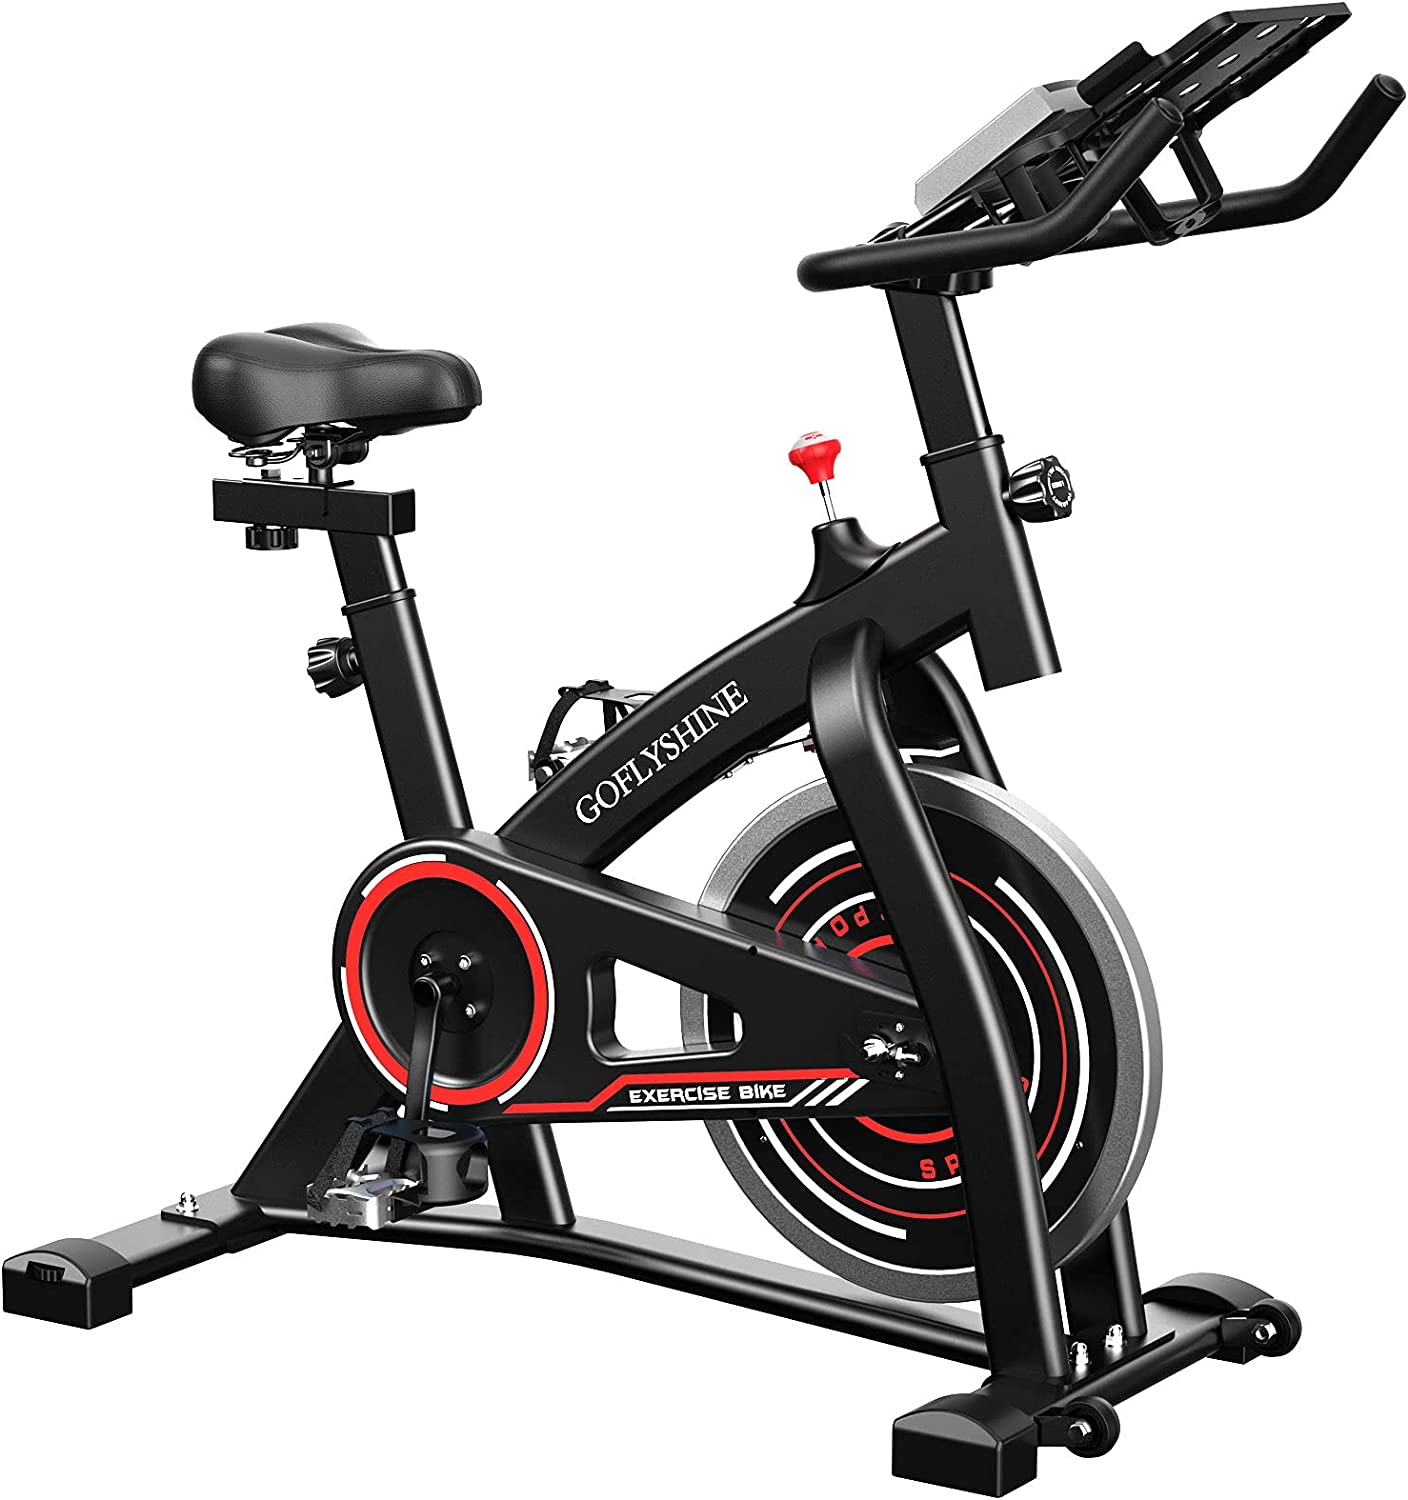 GOFLYSHINE Exercise Bikes Stationary Indo Bike Popular shop is the Max 55% OFF lowest price challenge Home for